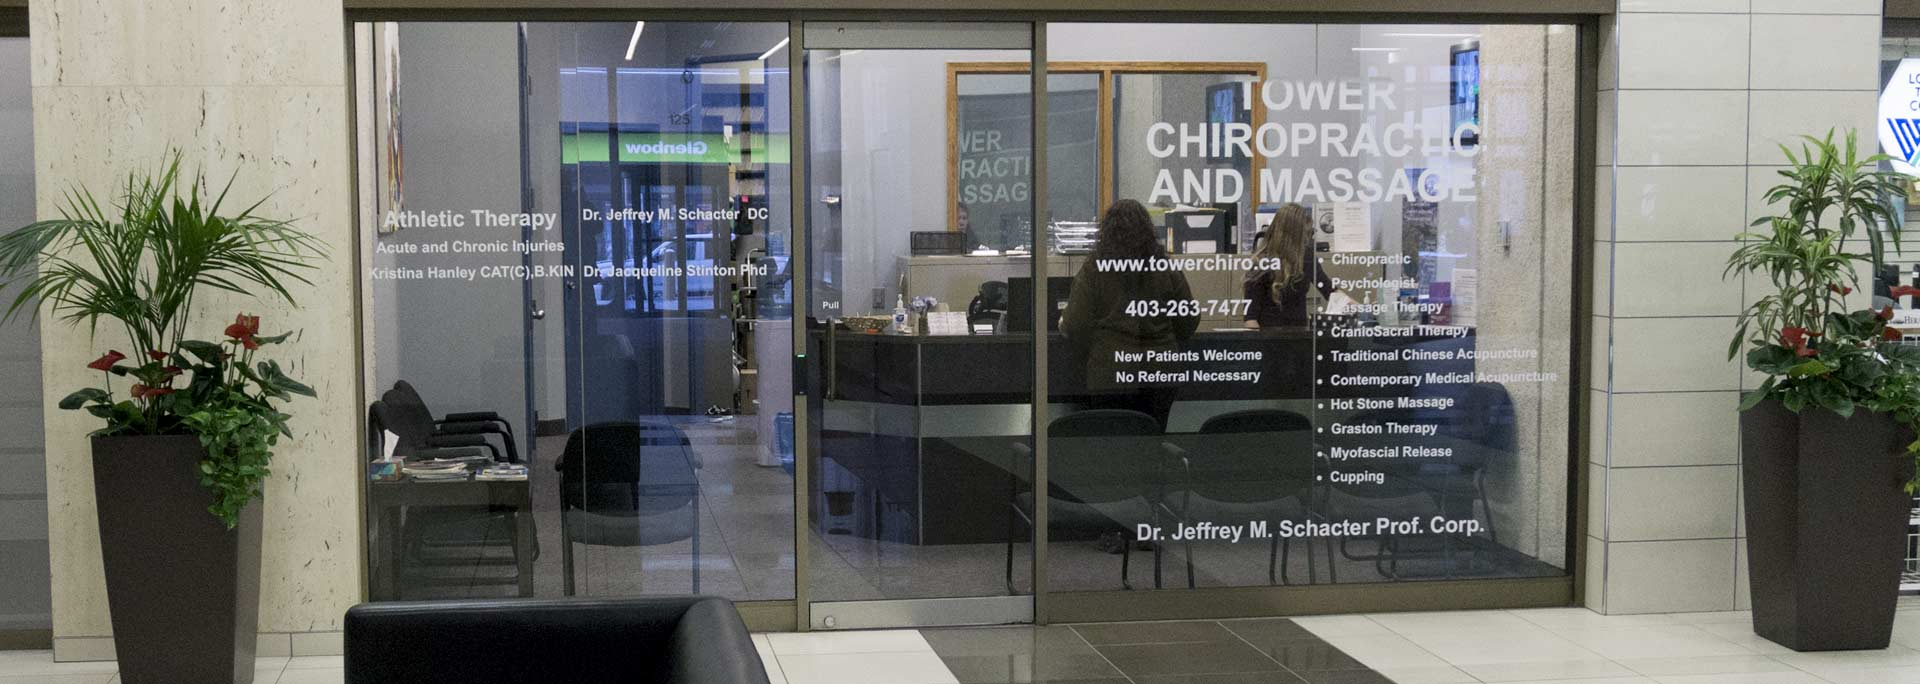 tower-chiro-entrance-banner